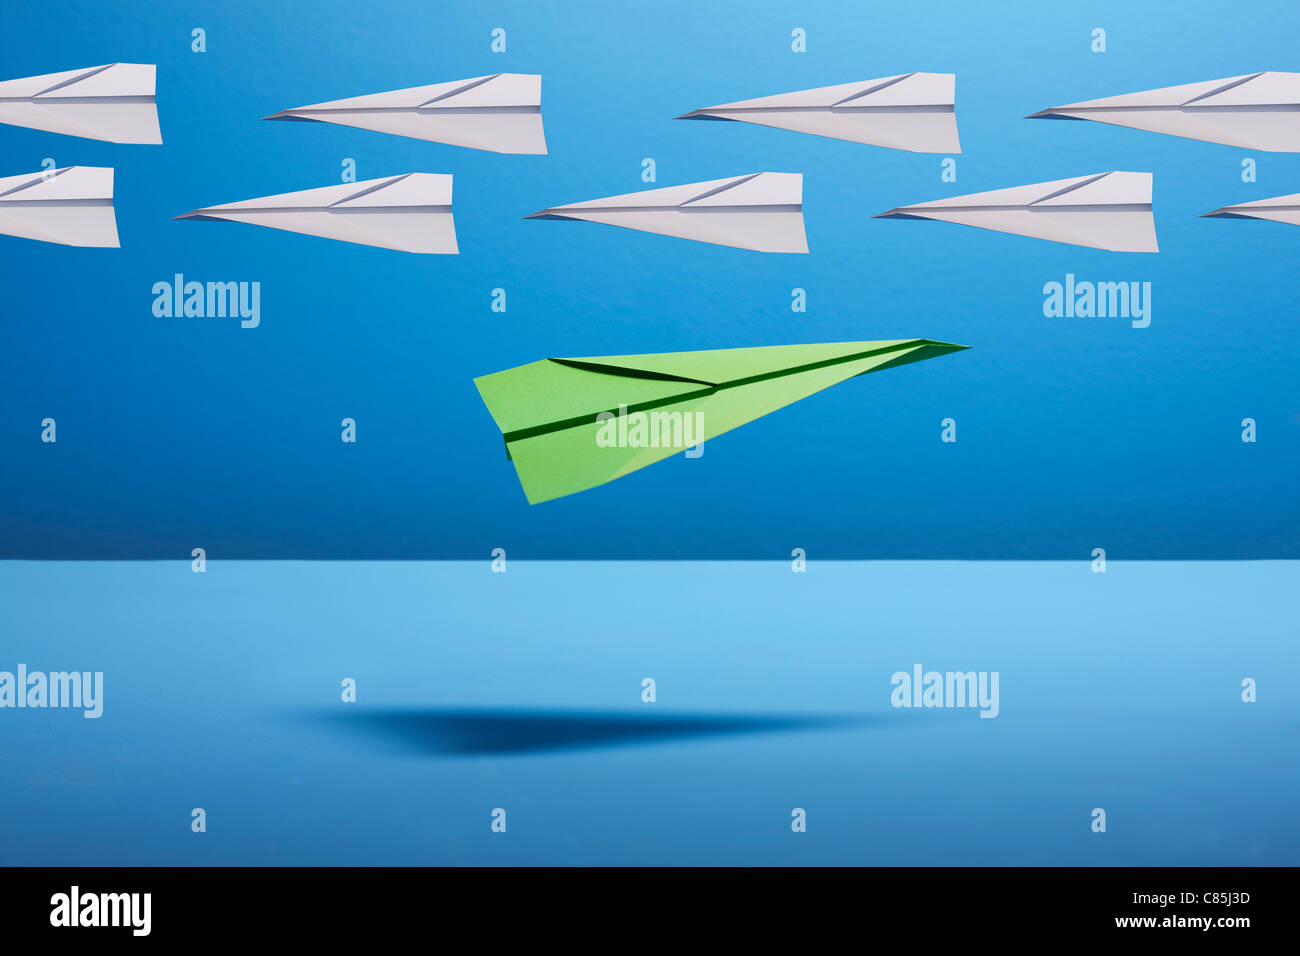 Paper aeroplanes against blue background - Stock Image